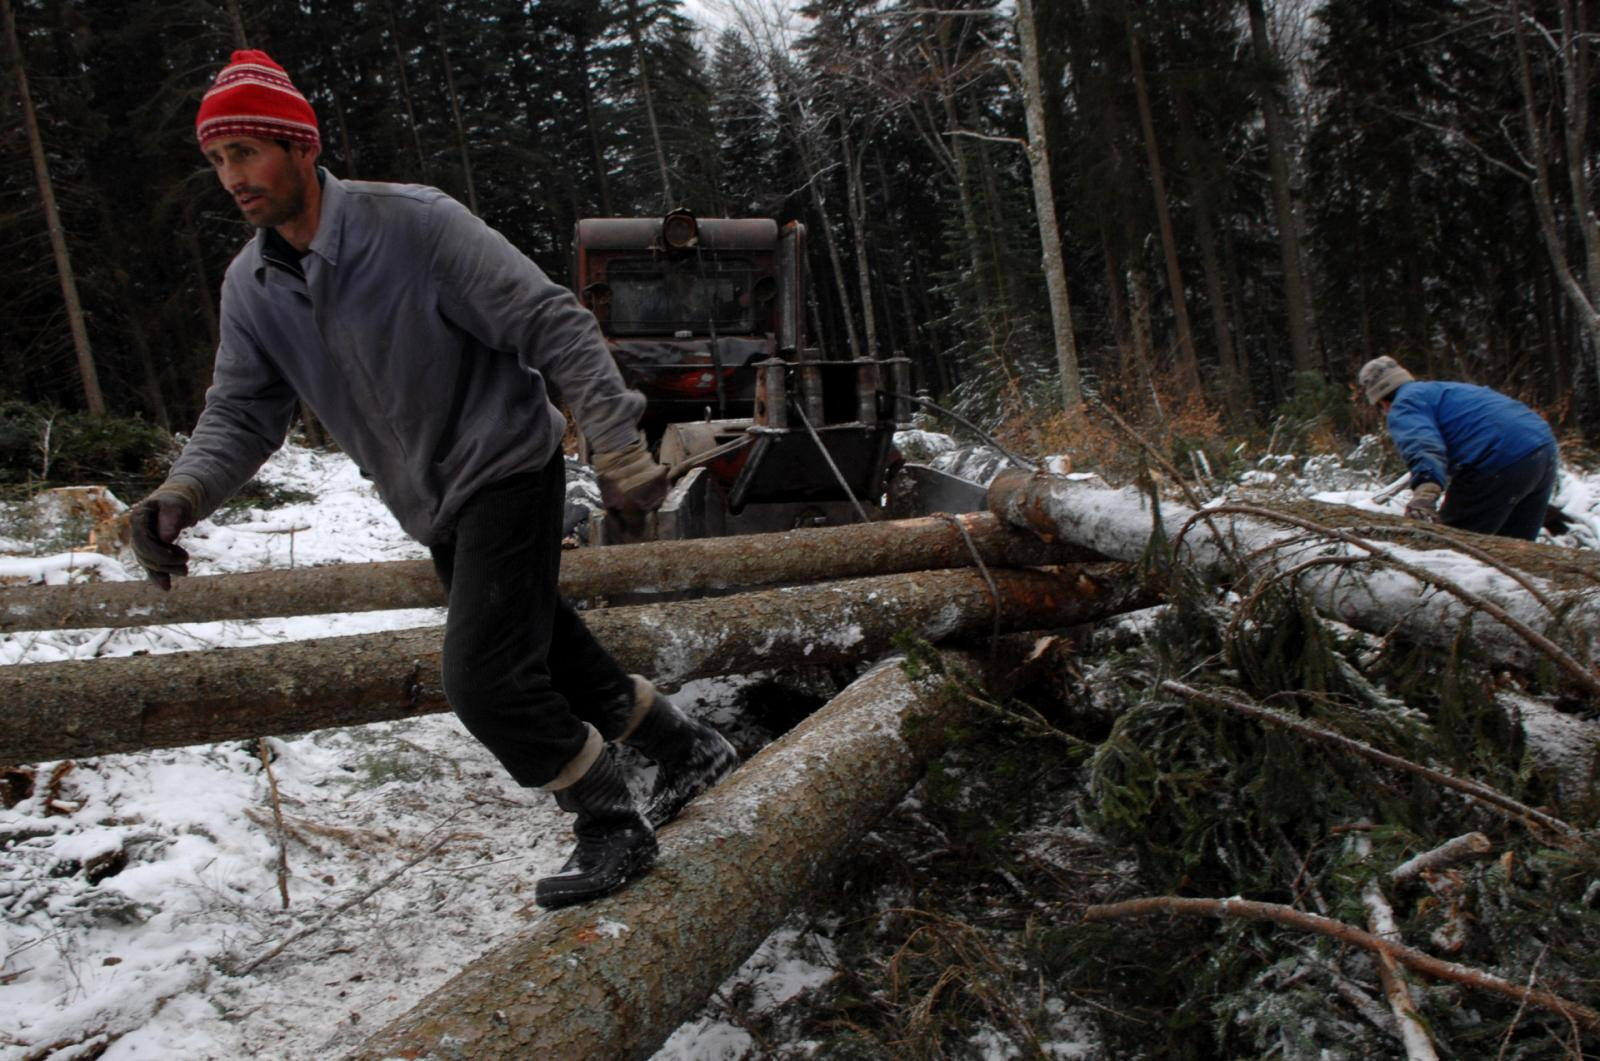 Romanian woodcutters work in the forest of the village of Comandau, Romania (280 km north-west from Bucharest). By The Associated Press